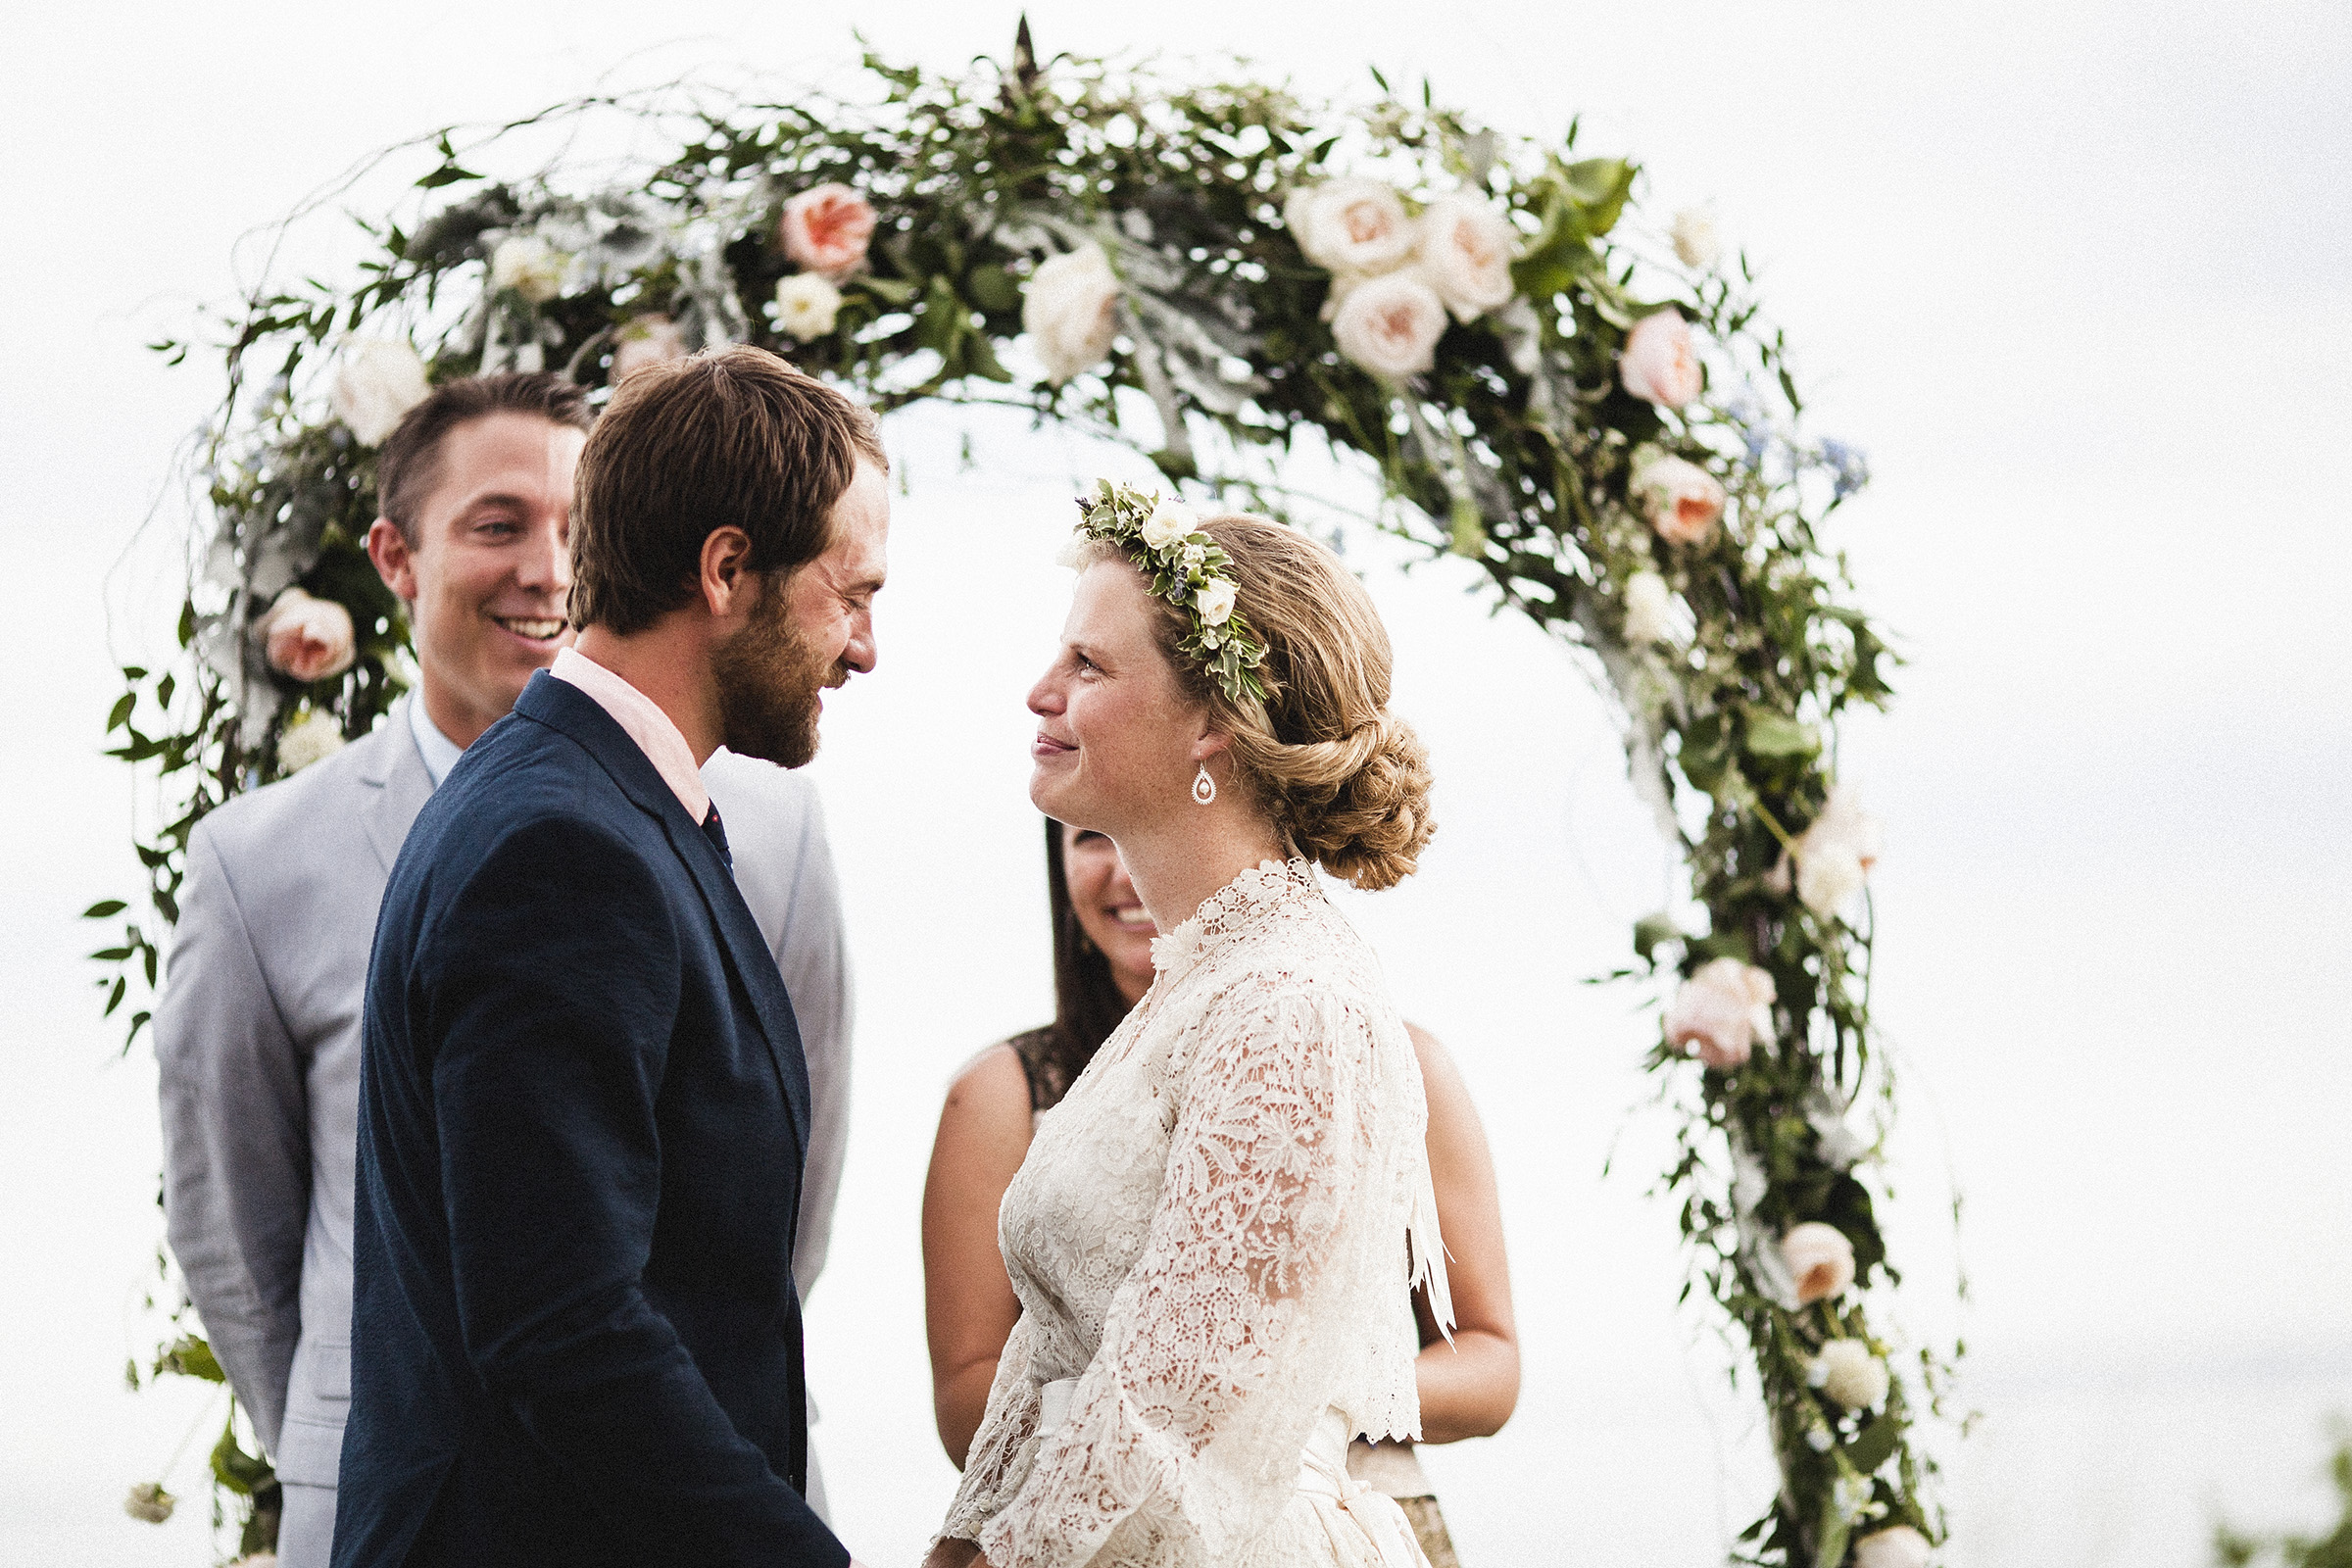 Caitlin + Rafe: Old Lyme, Connecticut